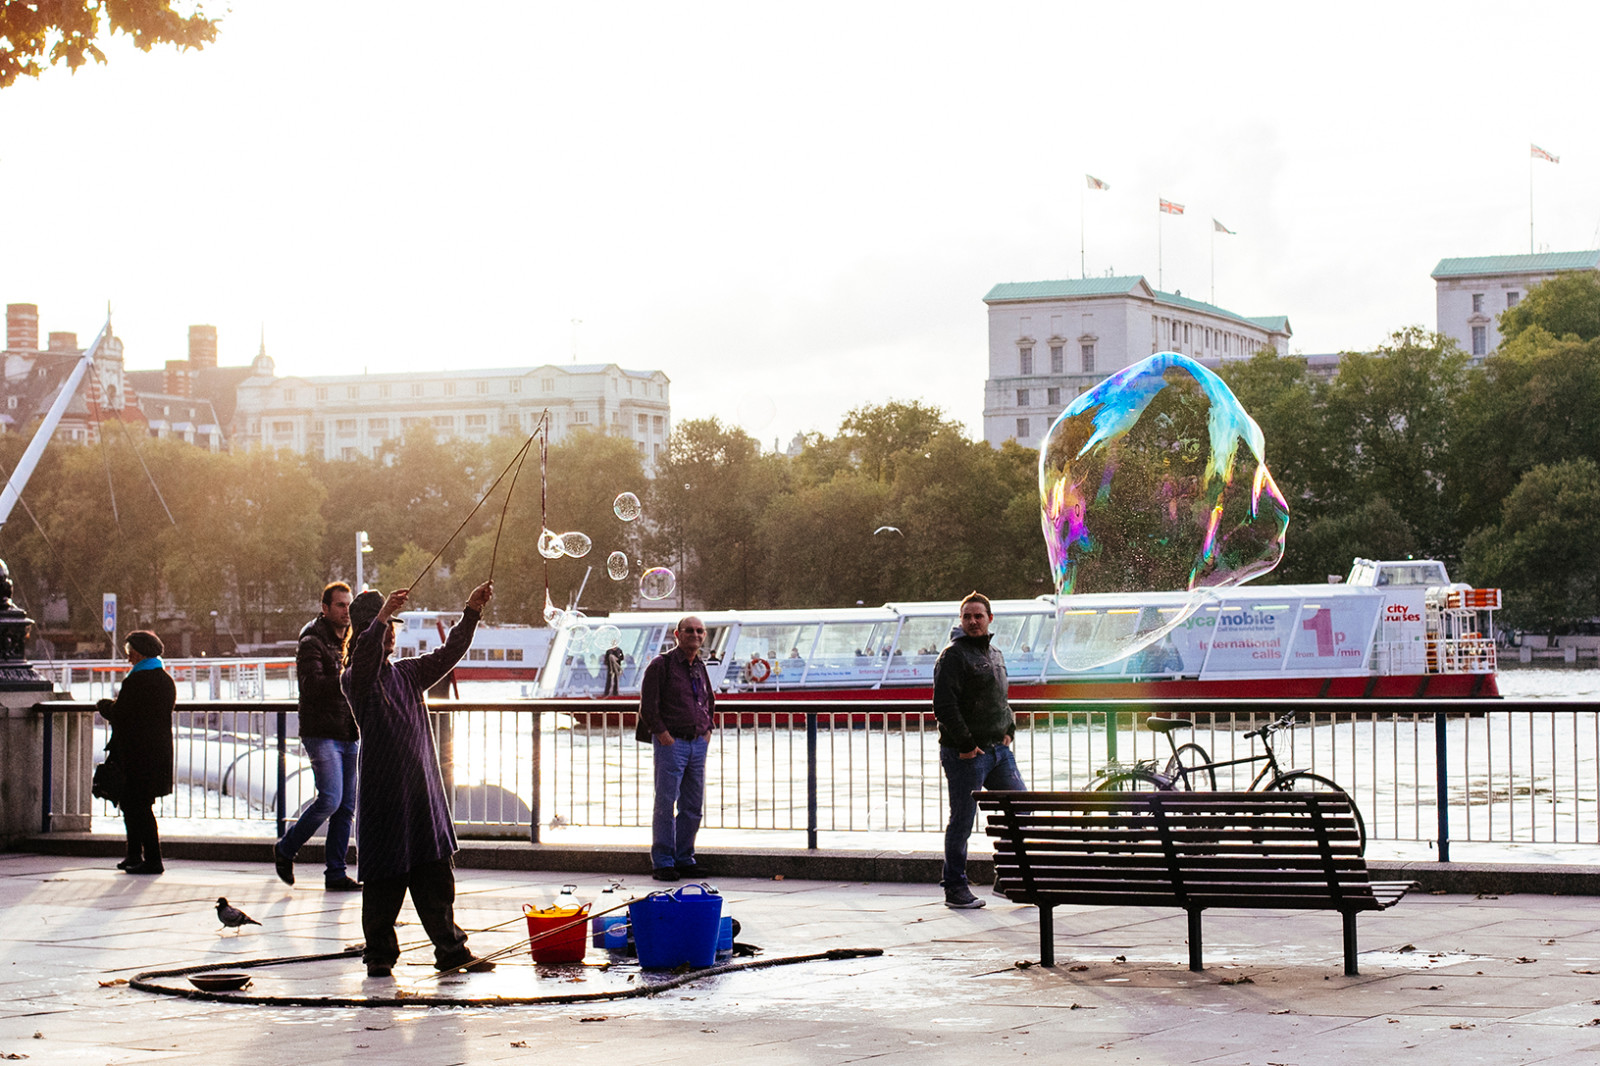 Love-Note-Photography-Southbank-London-7